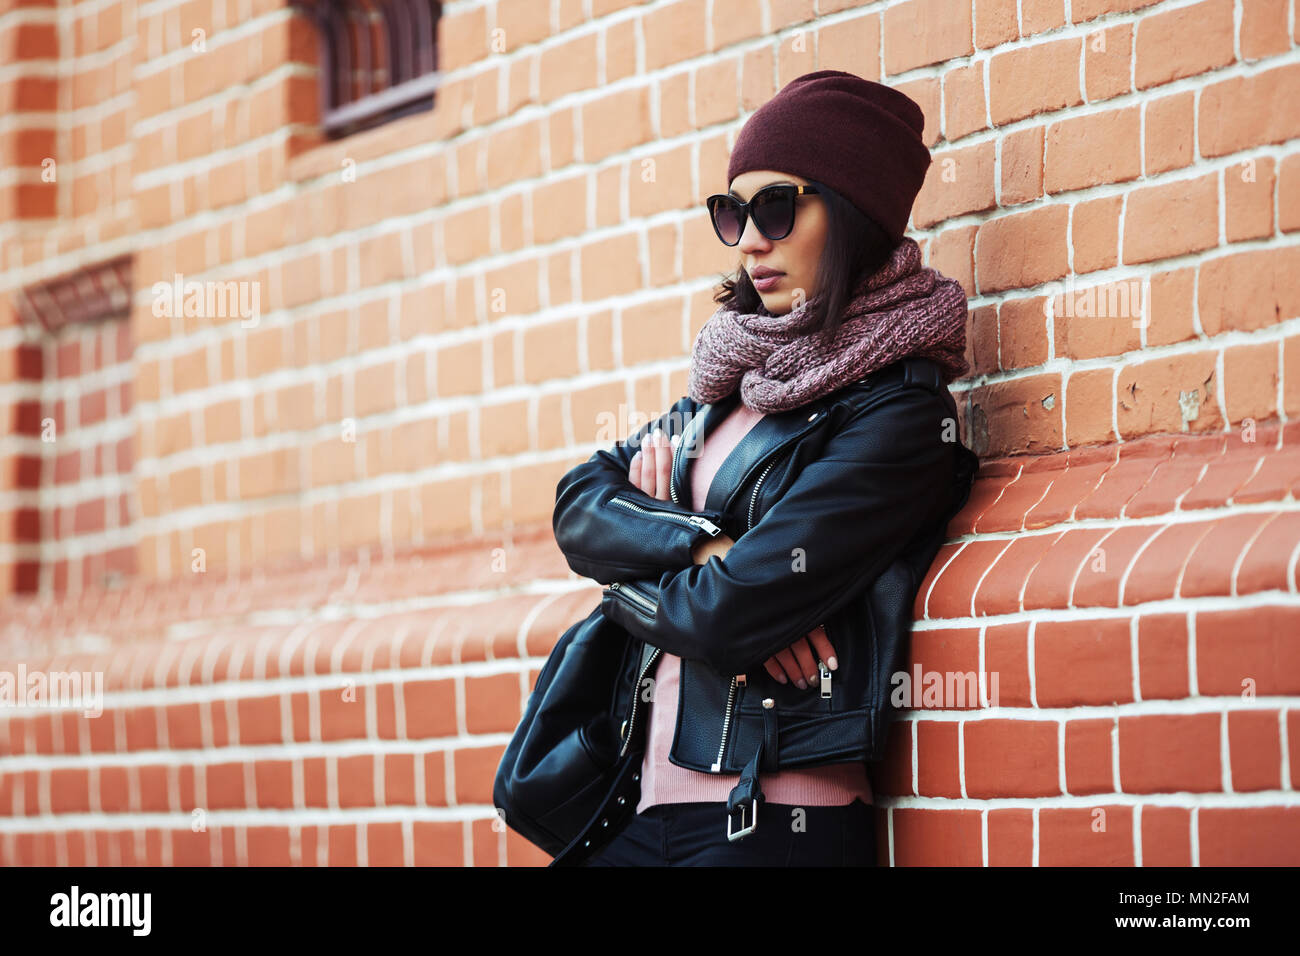 Young Fashion Woman Wearing Sunglasses Scarf And Beanie